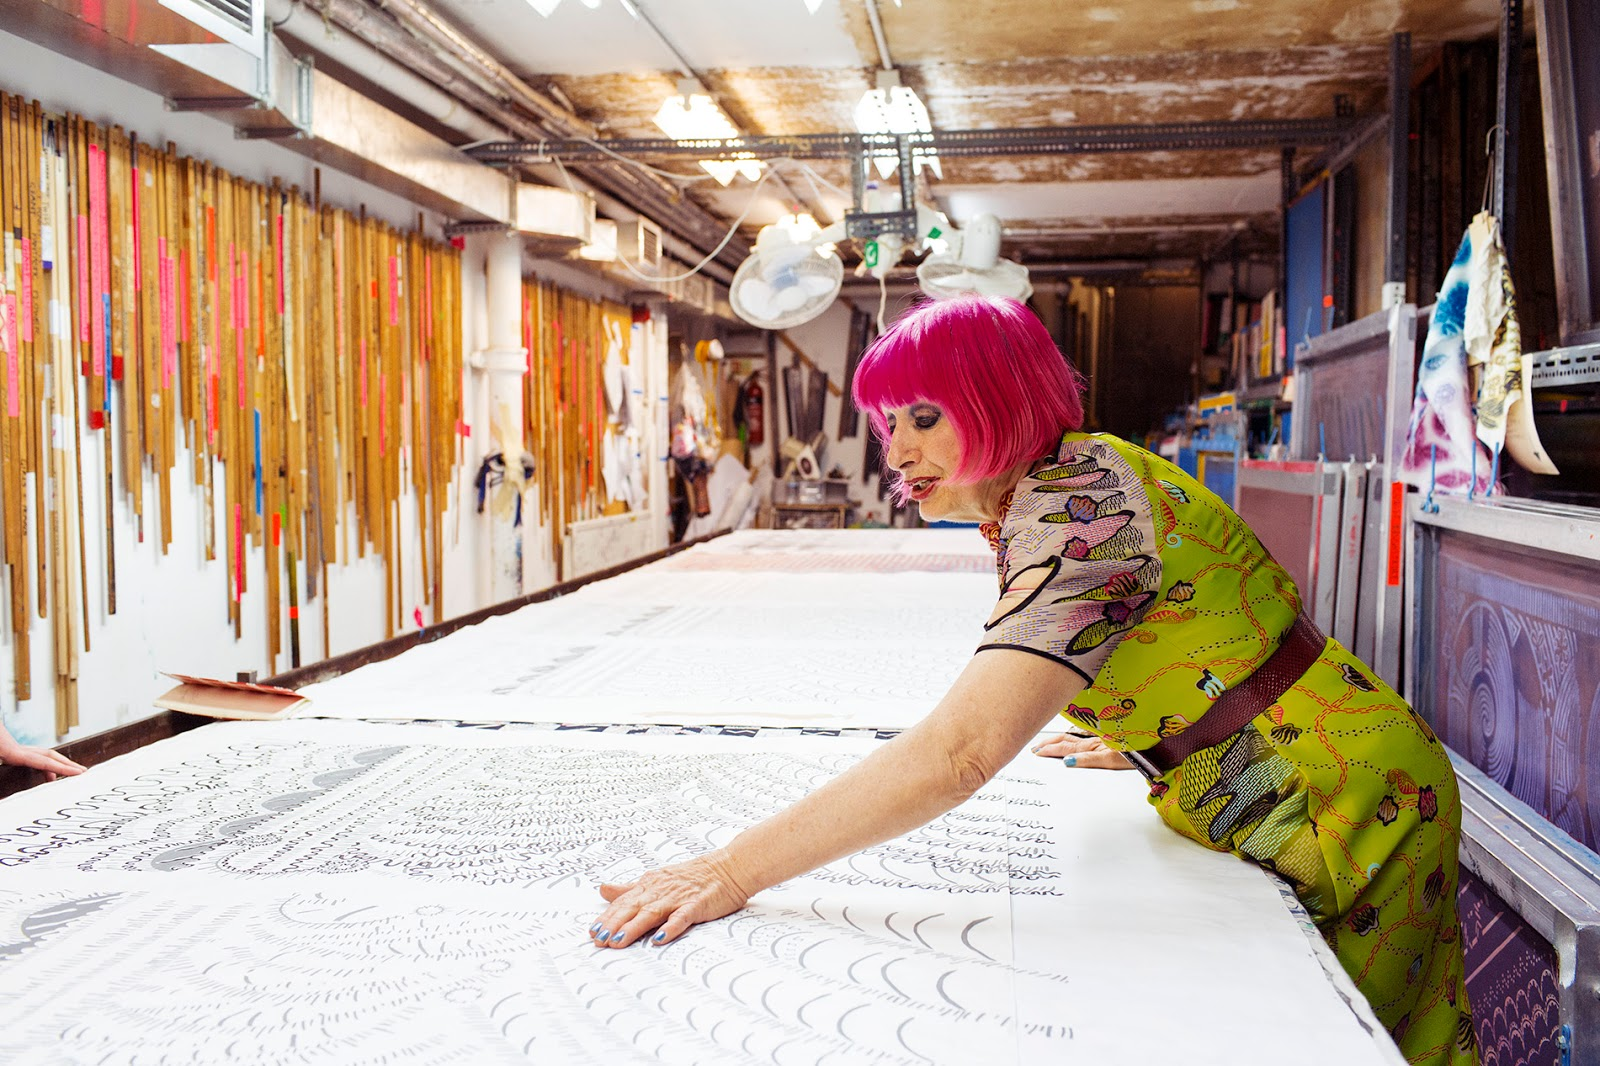 Loveisspeed Zandra Rhodes Fashion Designer At Home And Her Studio In London From The